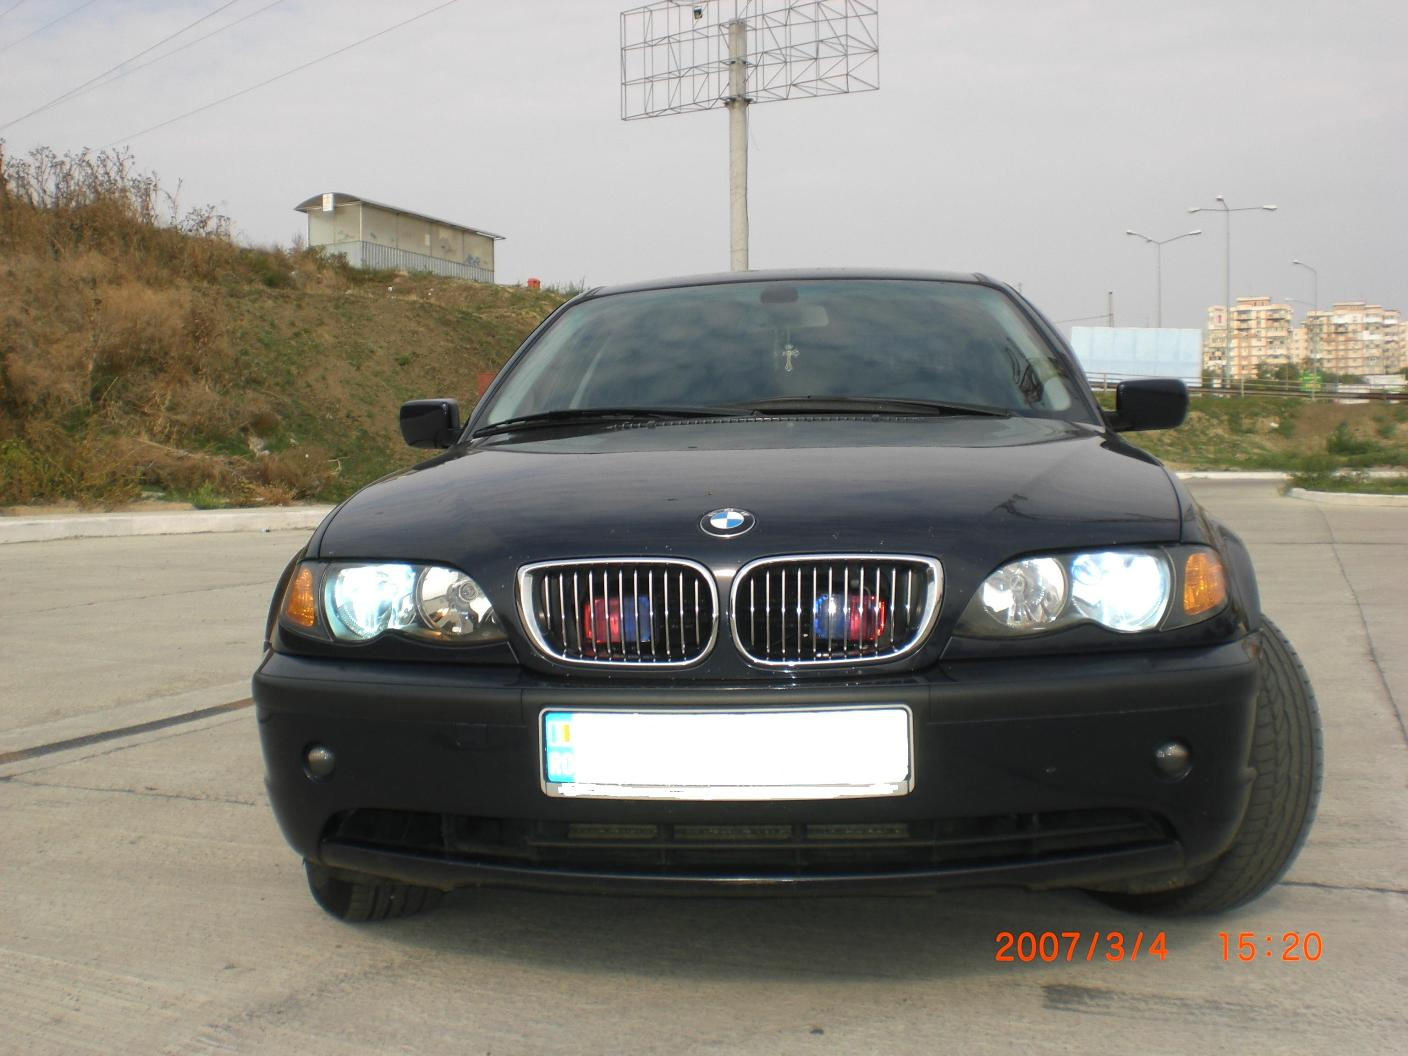 Vand bmw an 2002 cedare leasing